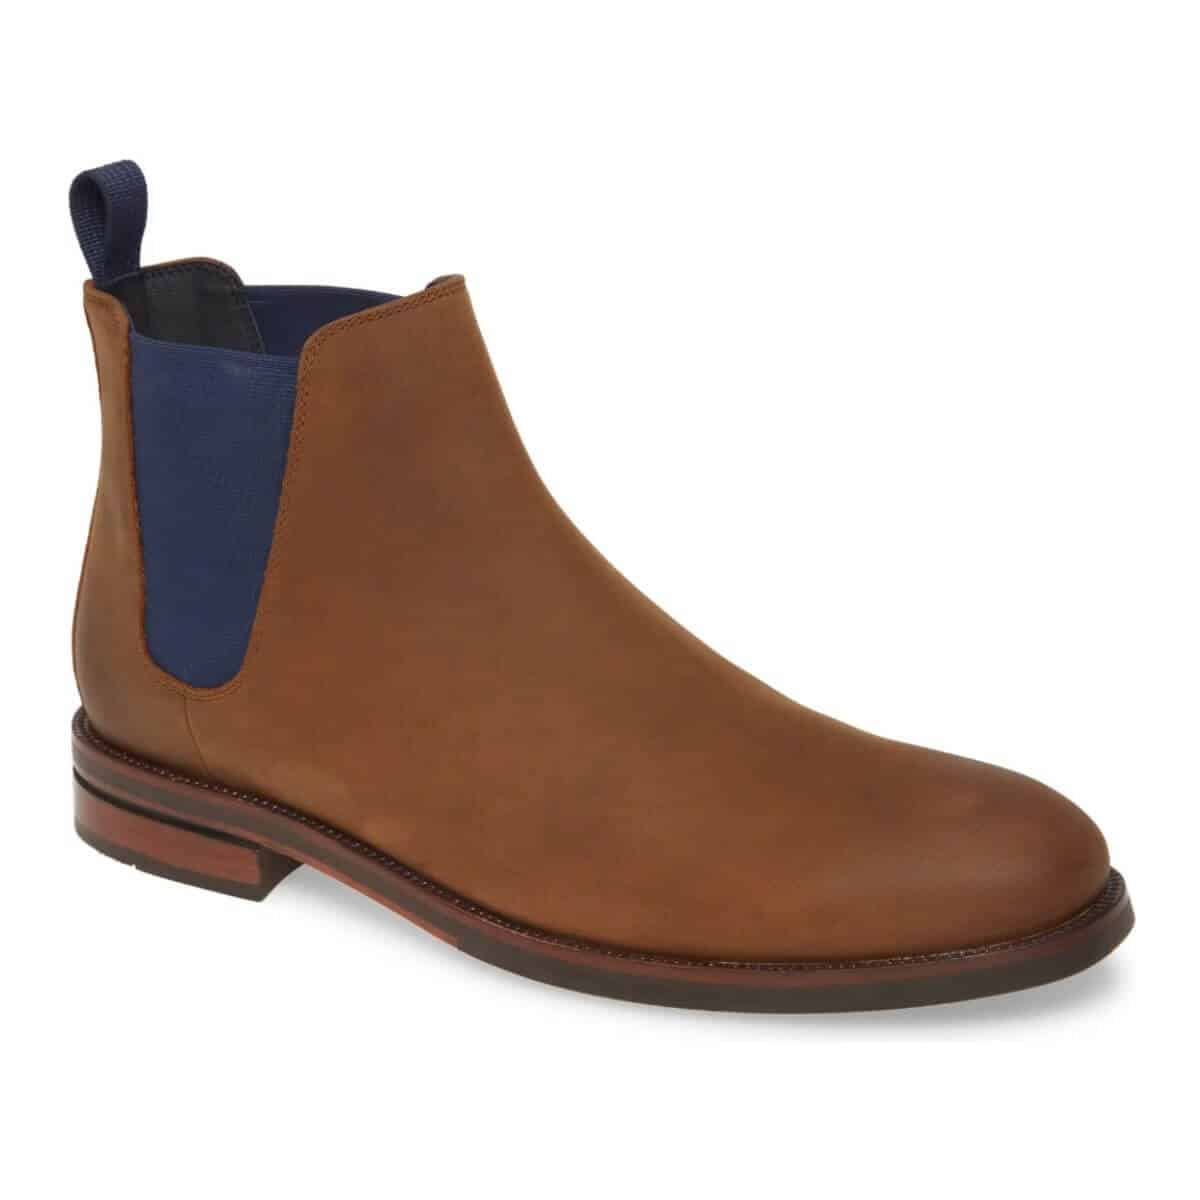 Cole Haan brown suede Chelsea boot with a navy blue side panel.